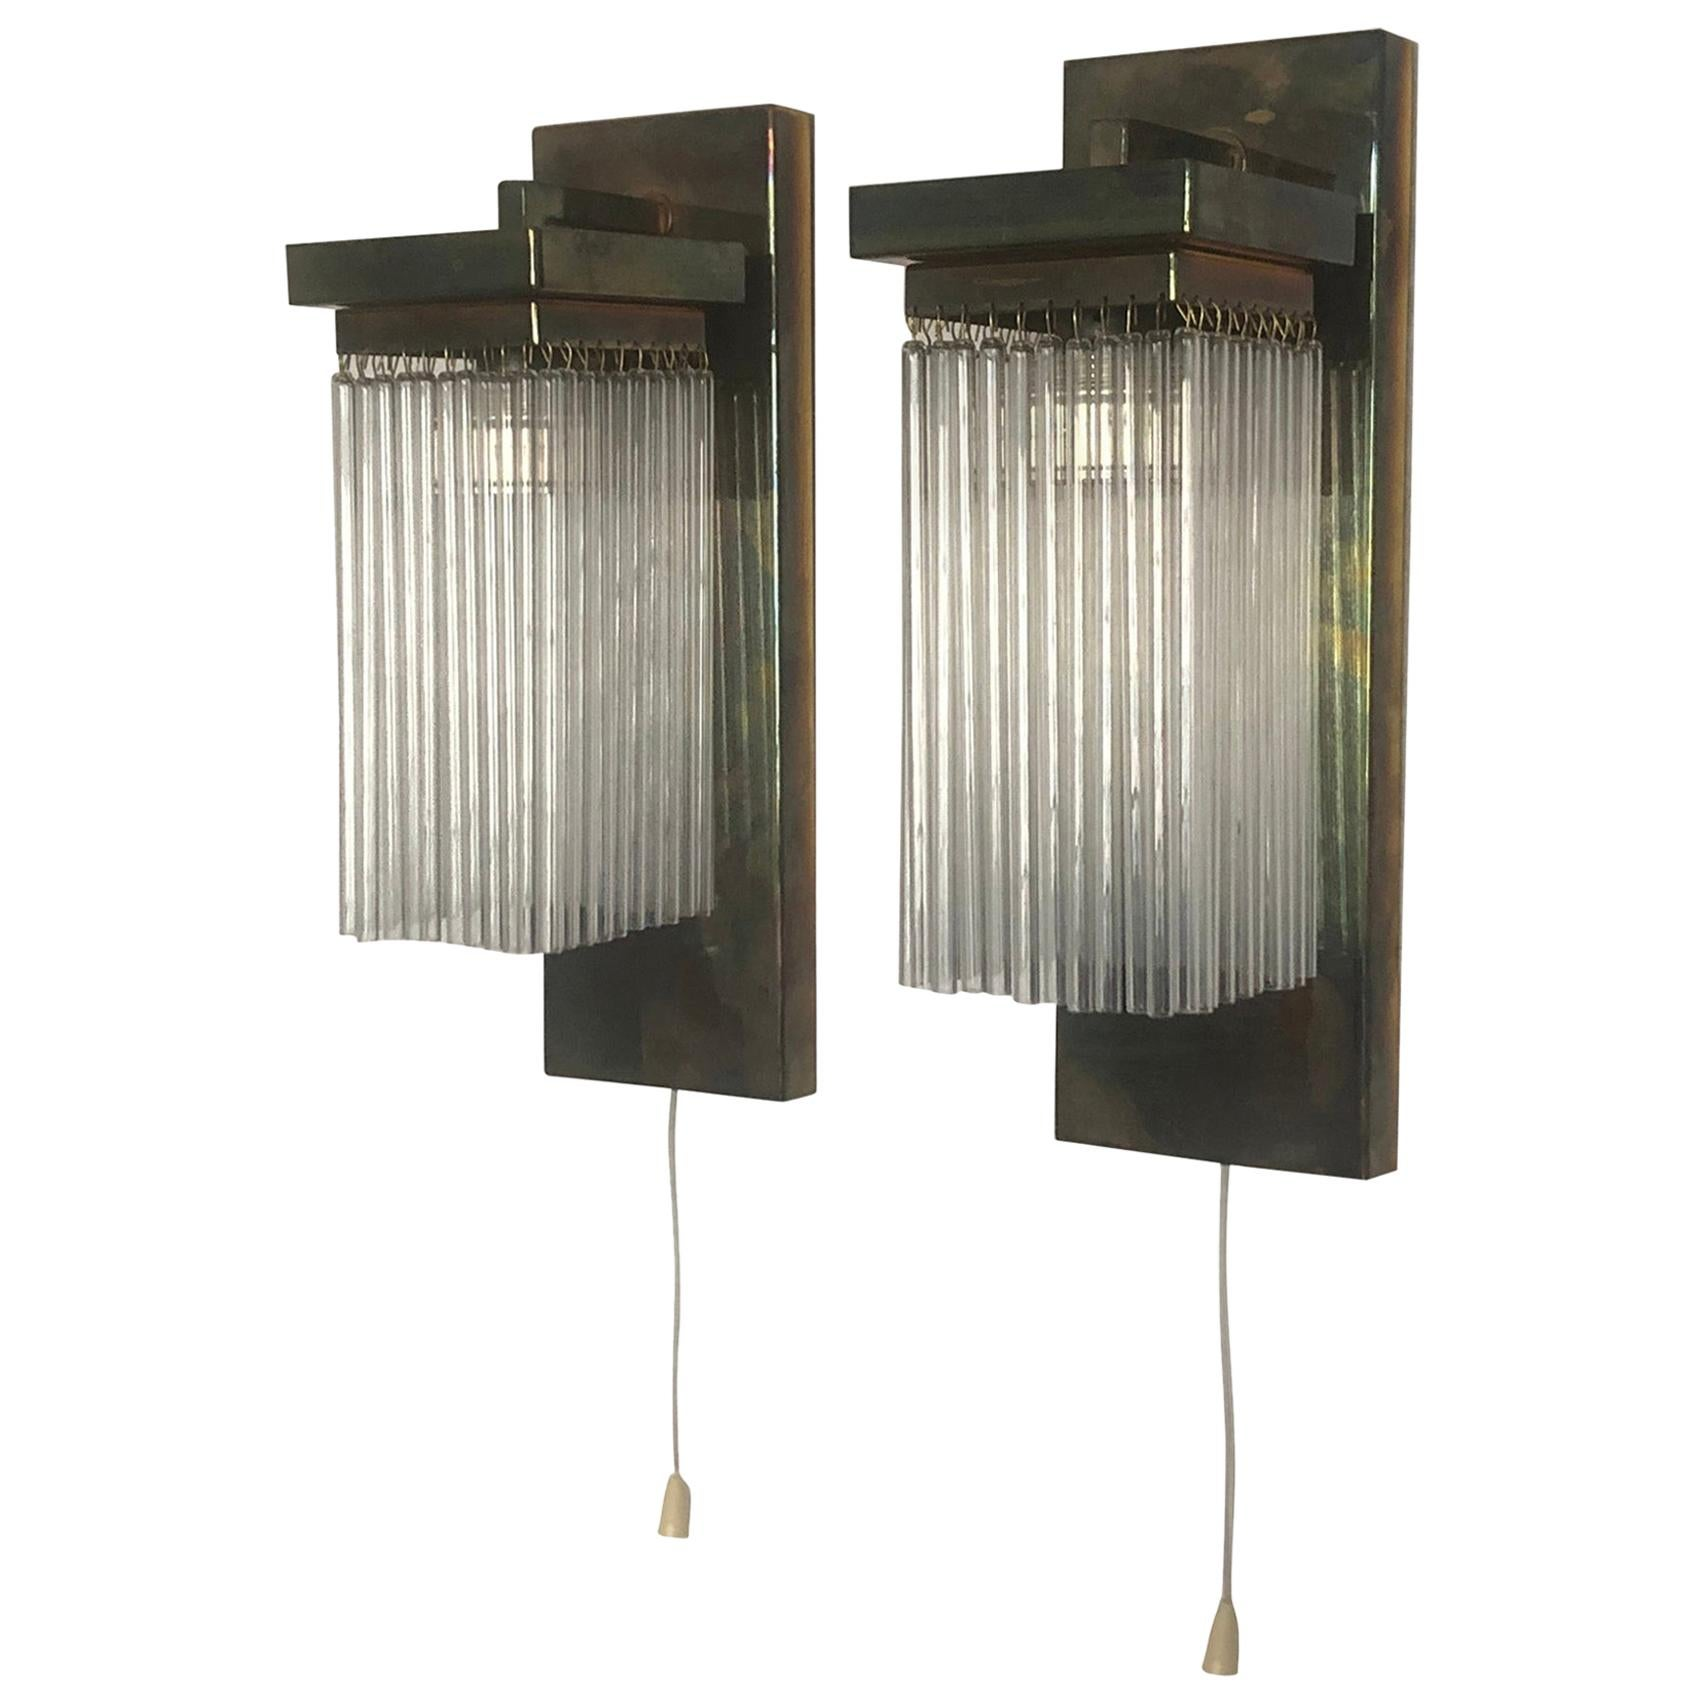 Pair of Brass and Glass Wall Sconces, Koloman Moser, Otto Wagner Style, Vienna